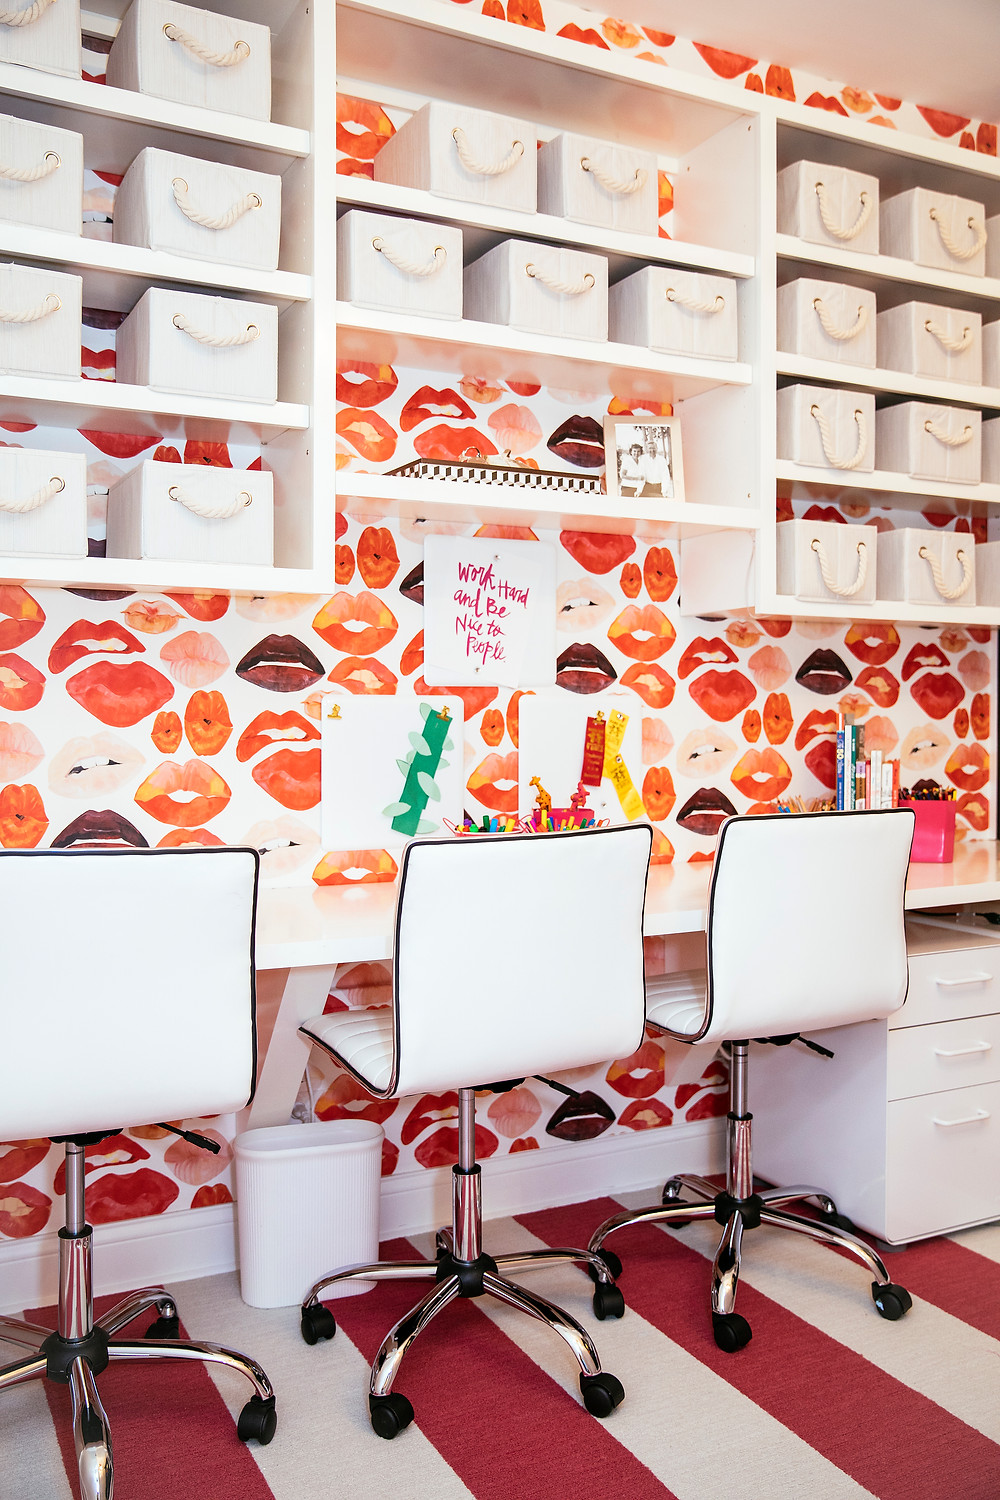 Kiss me wallpaper, lips wallpaper, kids office, storage boxes, exposed shelves, strip carpet, pink and white room